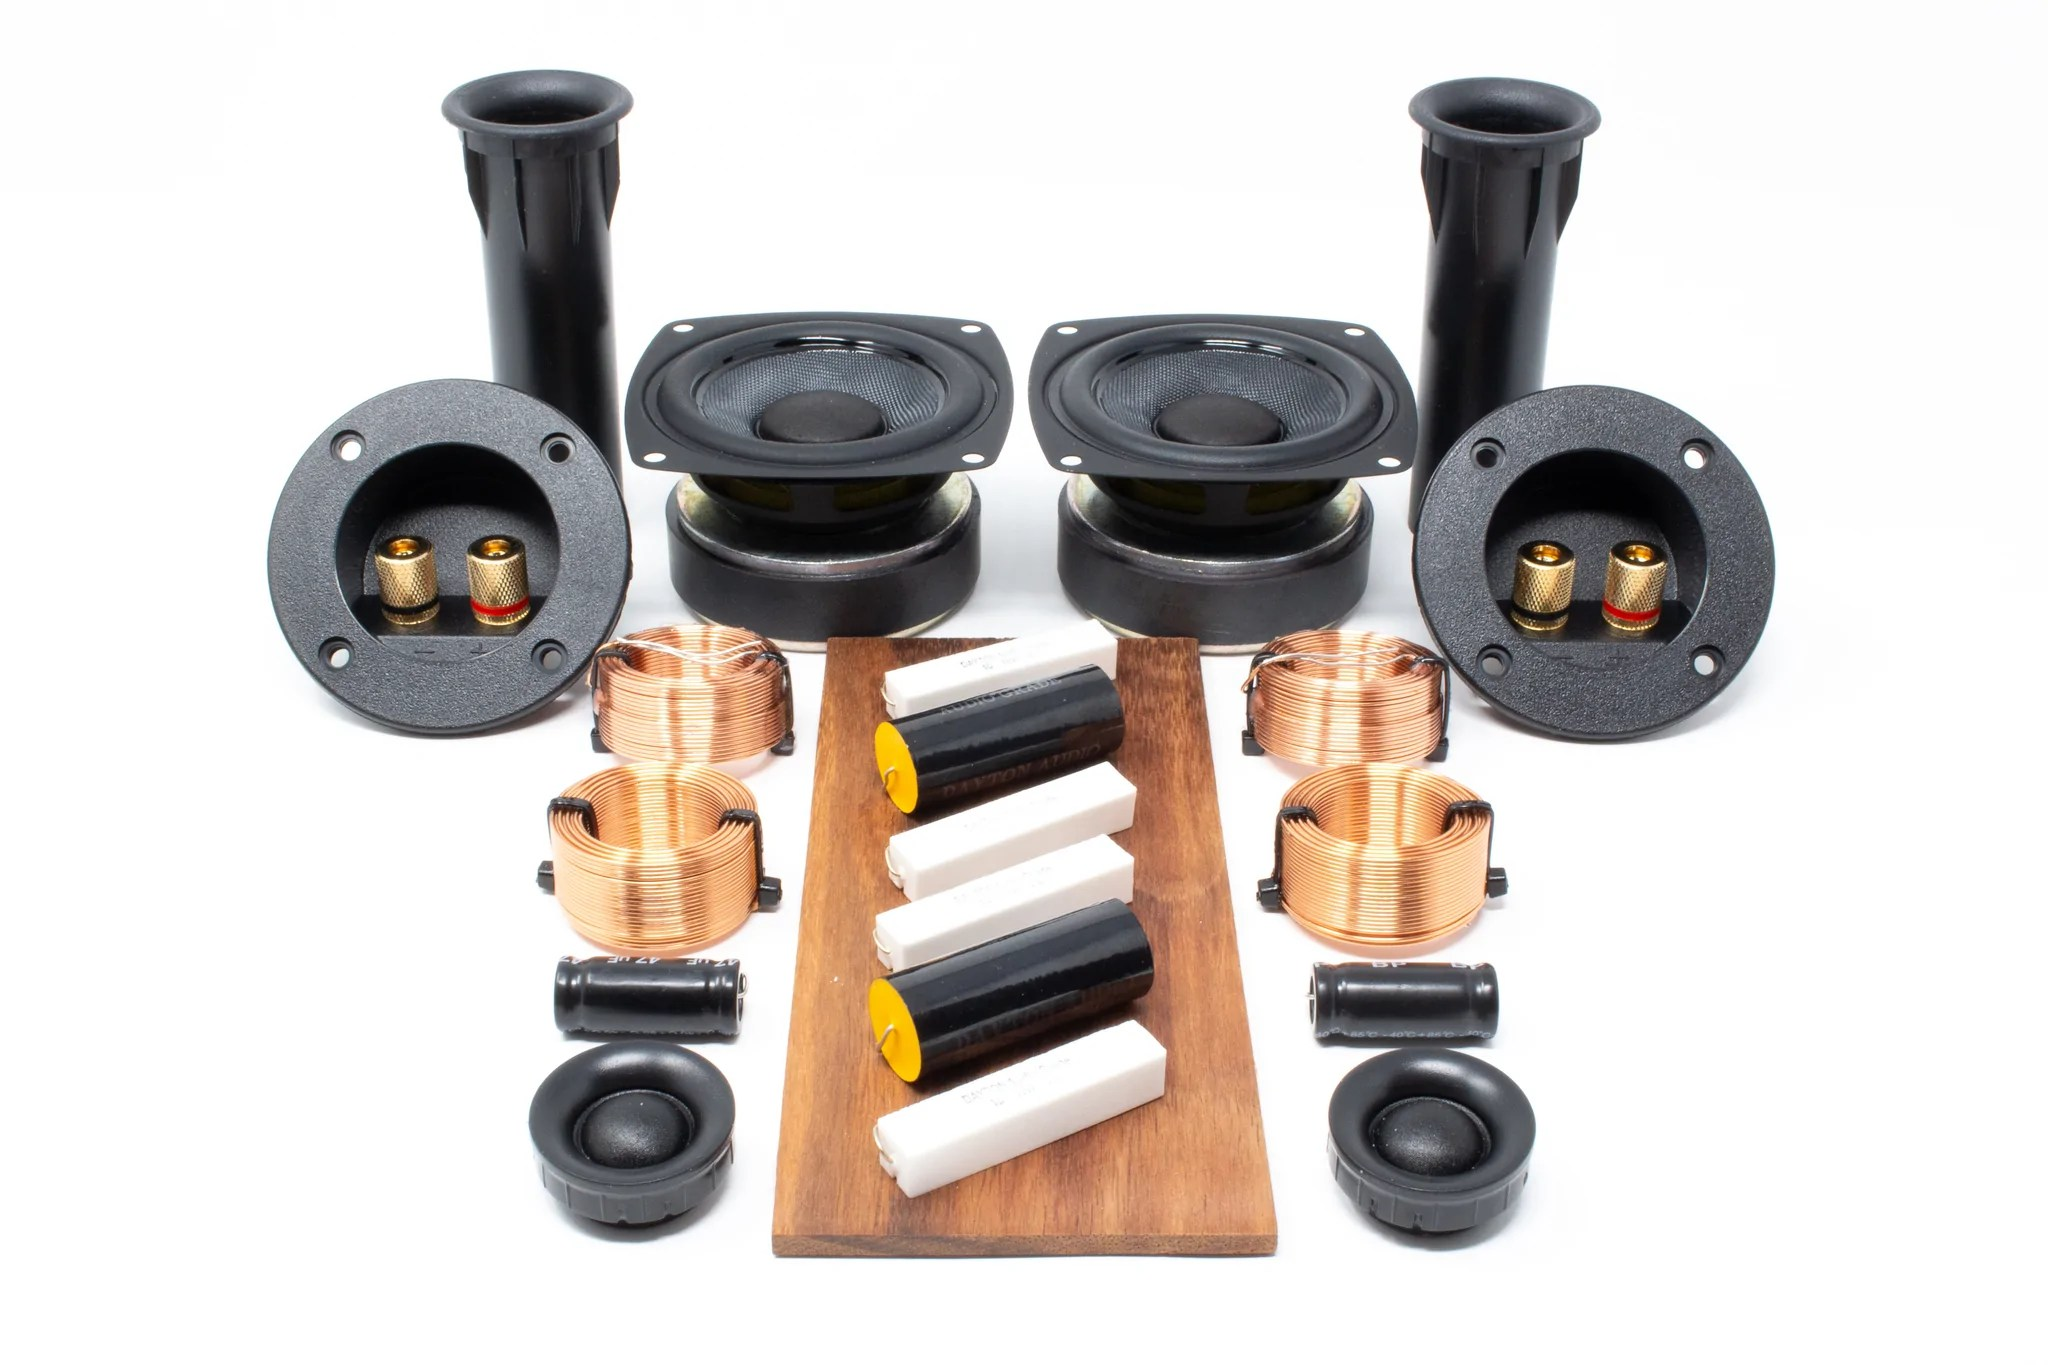 medium resolution of  fremont bookshelf speaker diy build kit